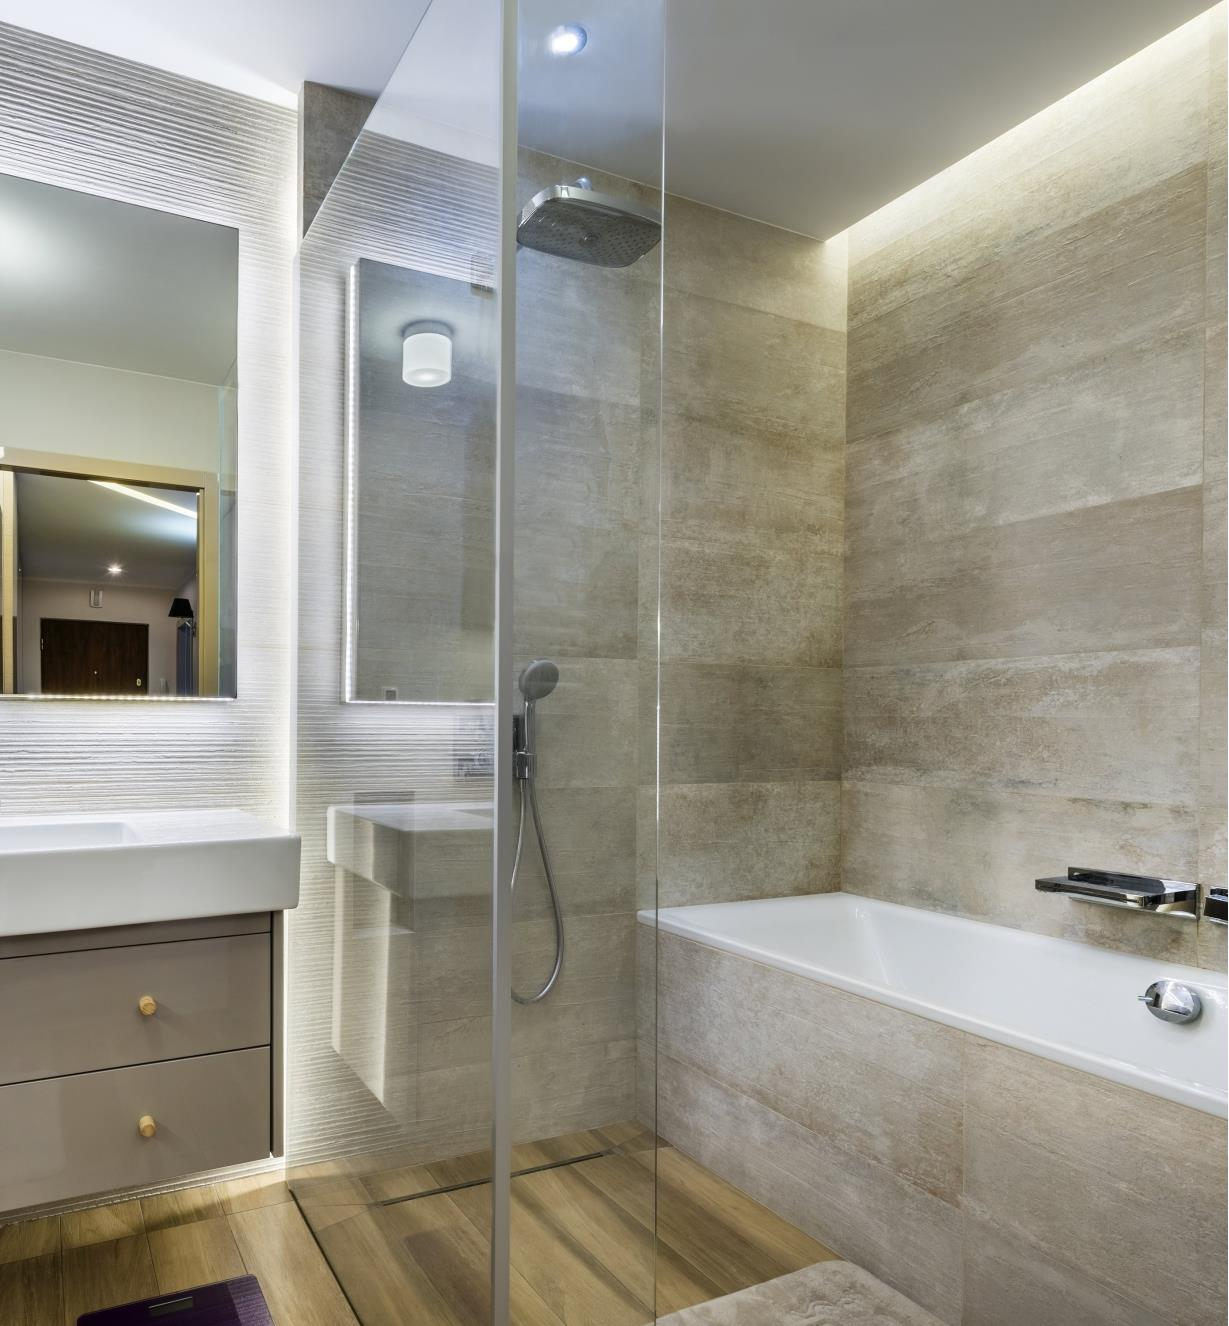 Example of LED lights installed in a bathroom